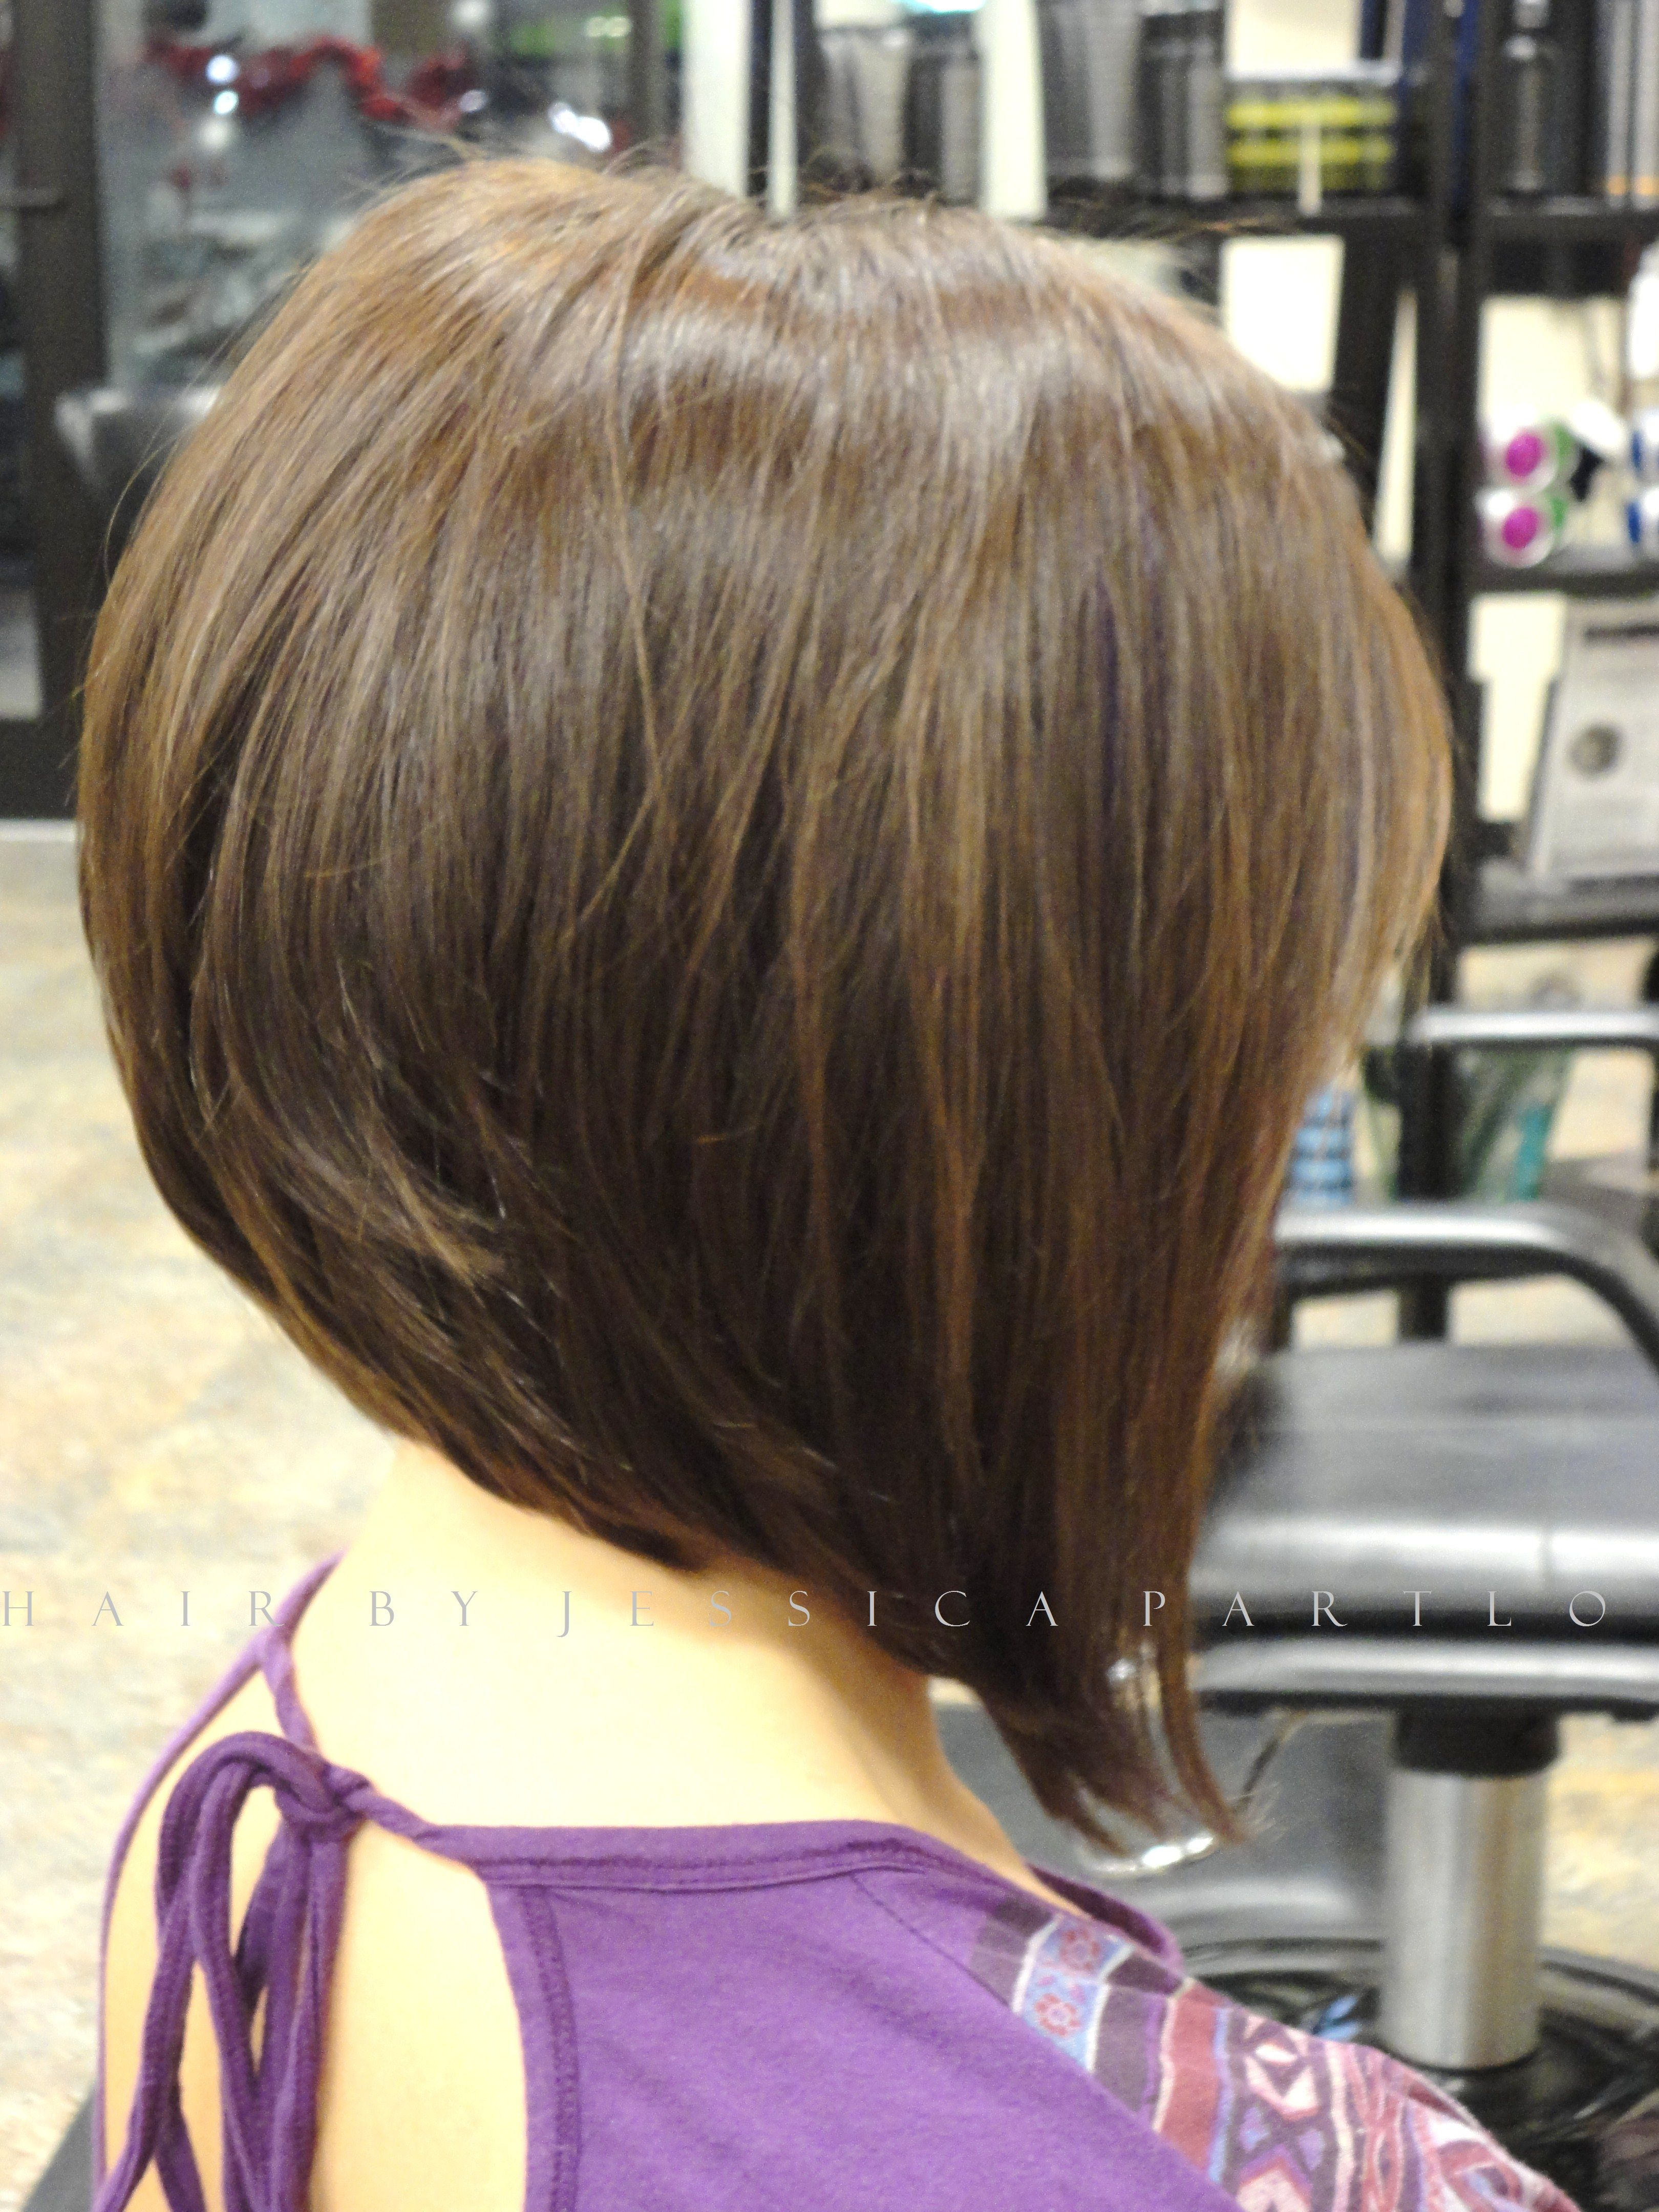 Inverted bob hair styles in pinterest hair hair cuts and